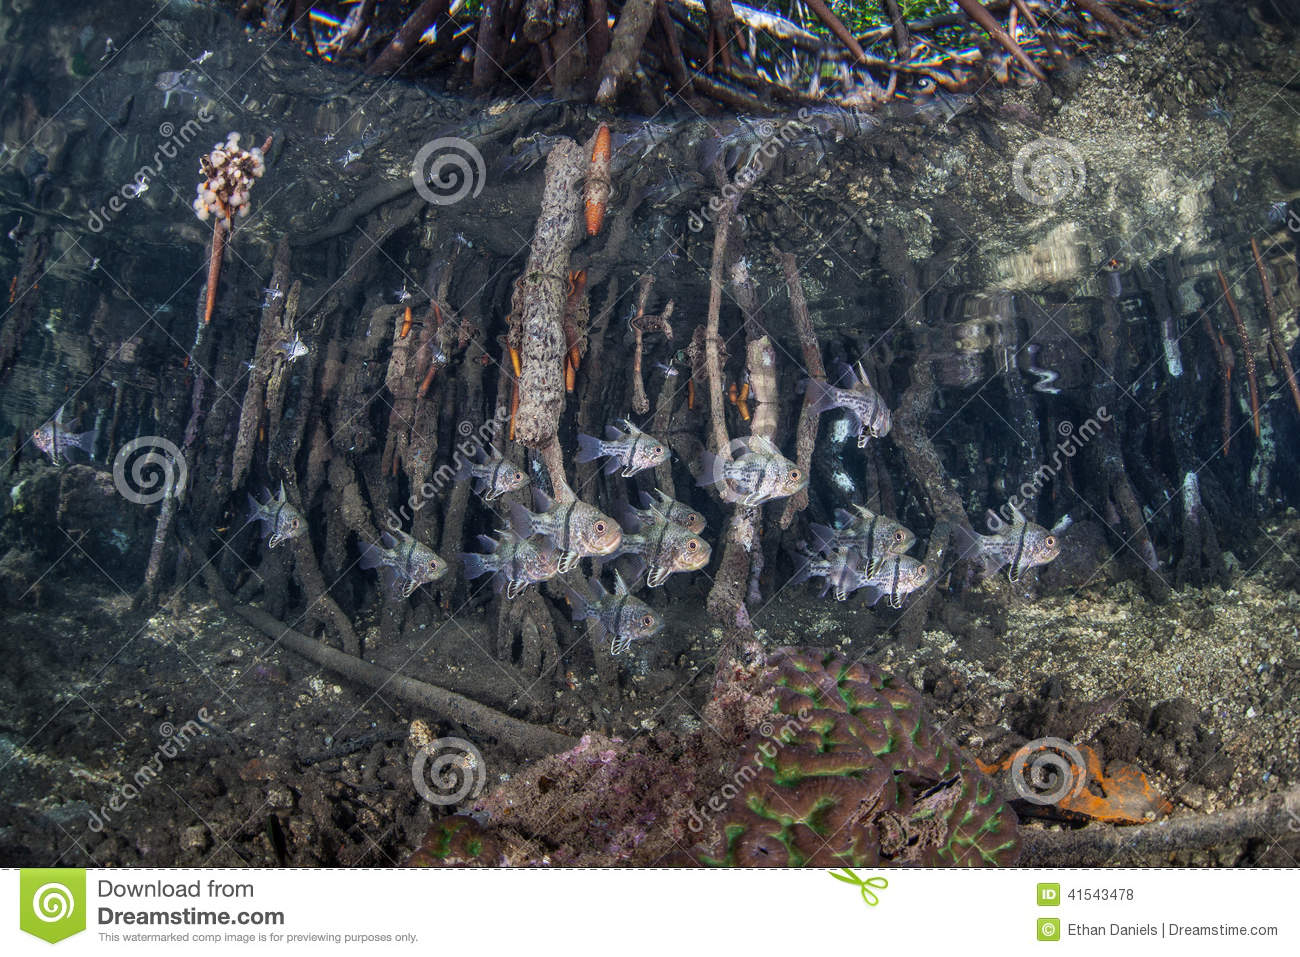 Mangrove Roots and Fish